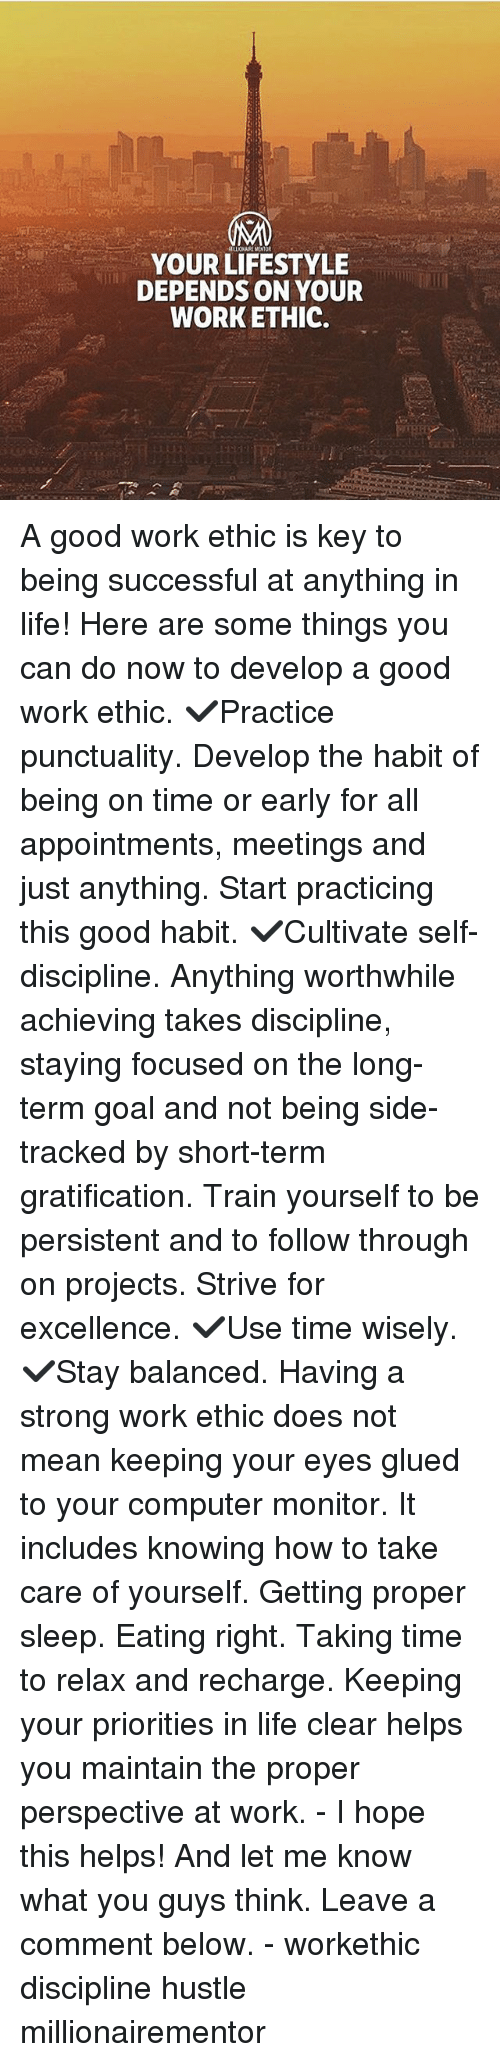 Gratification: YOUR LIFESTYLE  DEPENDS ON YOUR  WORKETHIC. A good work ethic is key to being successful at anything in life! Here are some things you can do now to develop a good work ethic. ✔️Practice punctuality. Develop the habit of being on time or early for all appointments, meetings and just anything. Start practicing this good habit. ✔️Cultivate self-discipline. Anything worthwhile achieving takes discipline, staying focused on the long-term goal and not being side-tracked by short-term gratification. Train yourself to be persistent and to follow through on projects. Strive for excellence. ✔️Use time wisely. ✔️Stay balanced. Having a strong work ethic does not mean keeping your eyes glued to your computer monitor. It includes knowing how to take care of yourself. Getting proper sleep. Eating right. Taking time to relax and recharge. Keeping your priorities in life clear helps you maintain the proper perspective at work. - I hope this helps! And let me know what you guys think. Leave a comment below. - workethic discipline hustle millionairementor